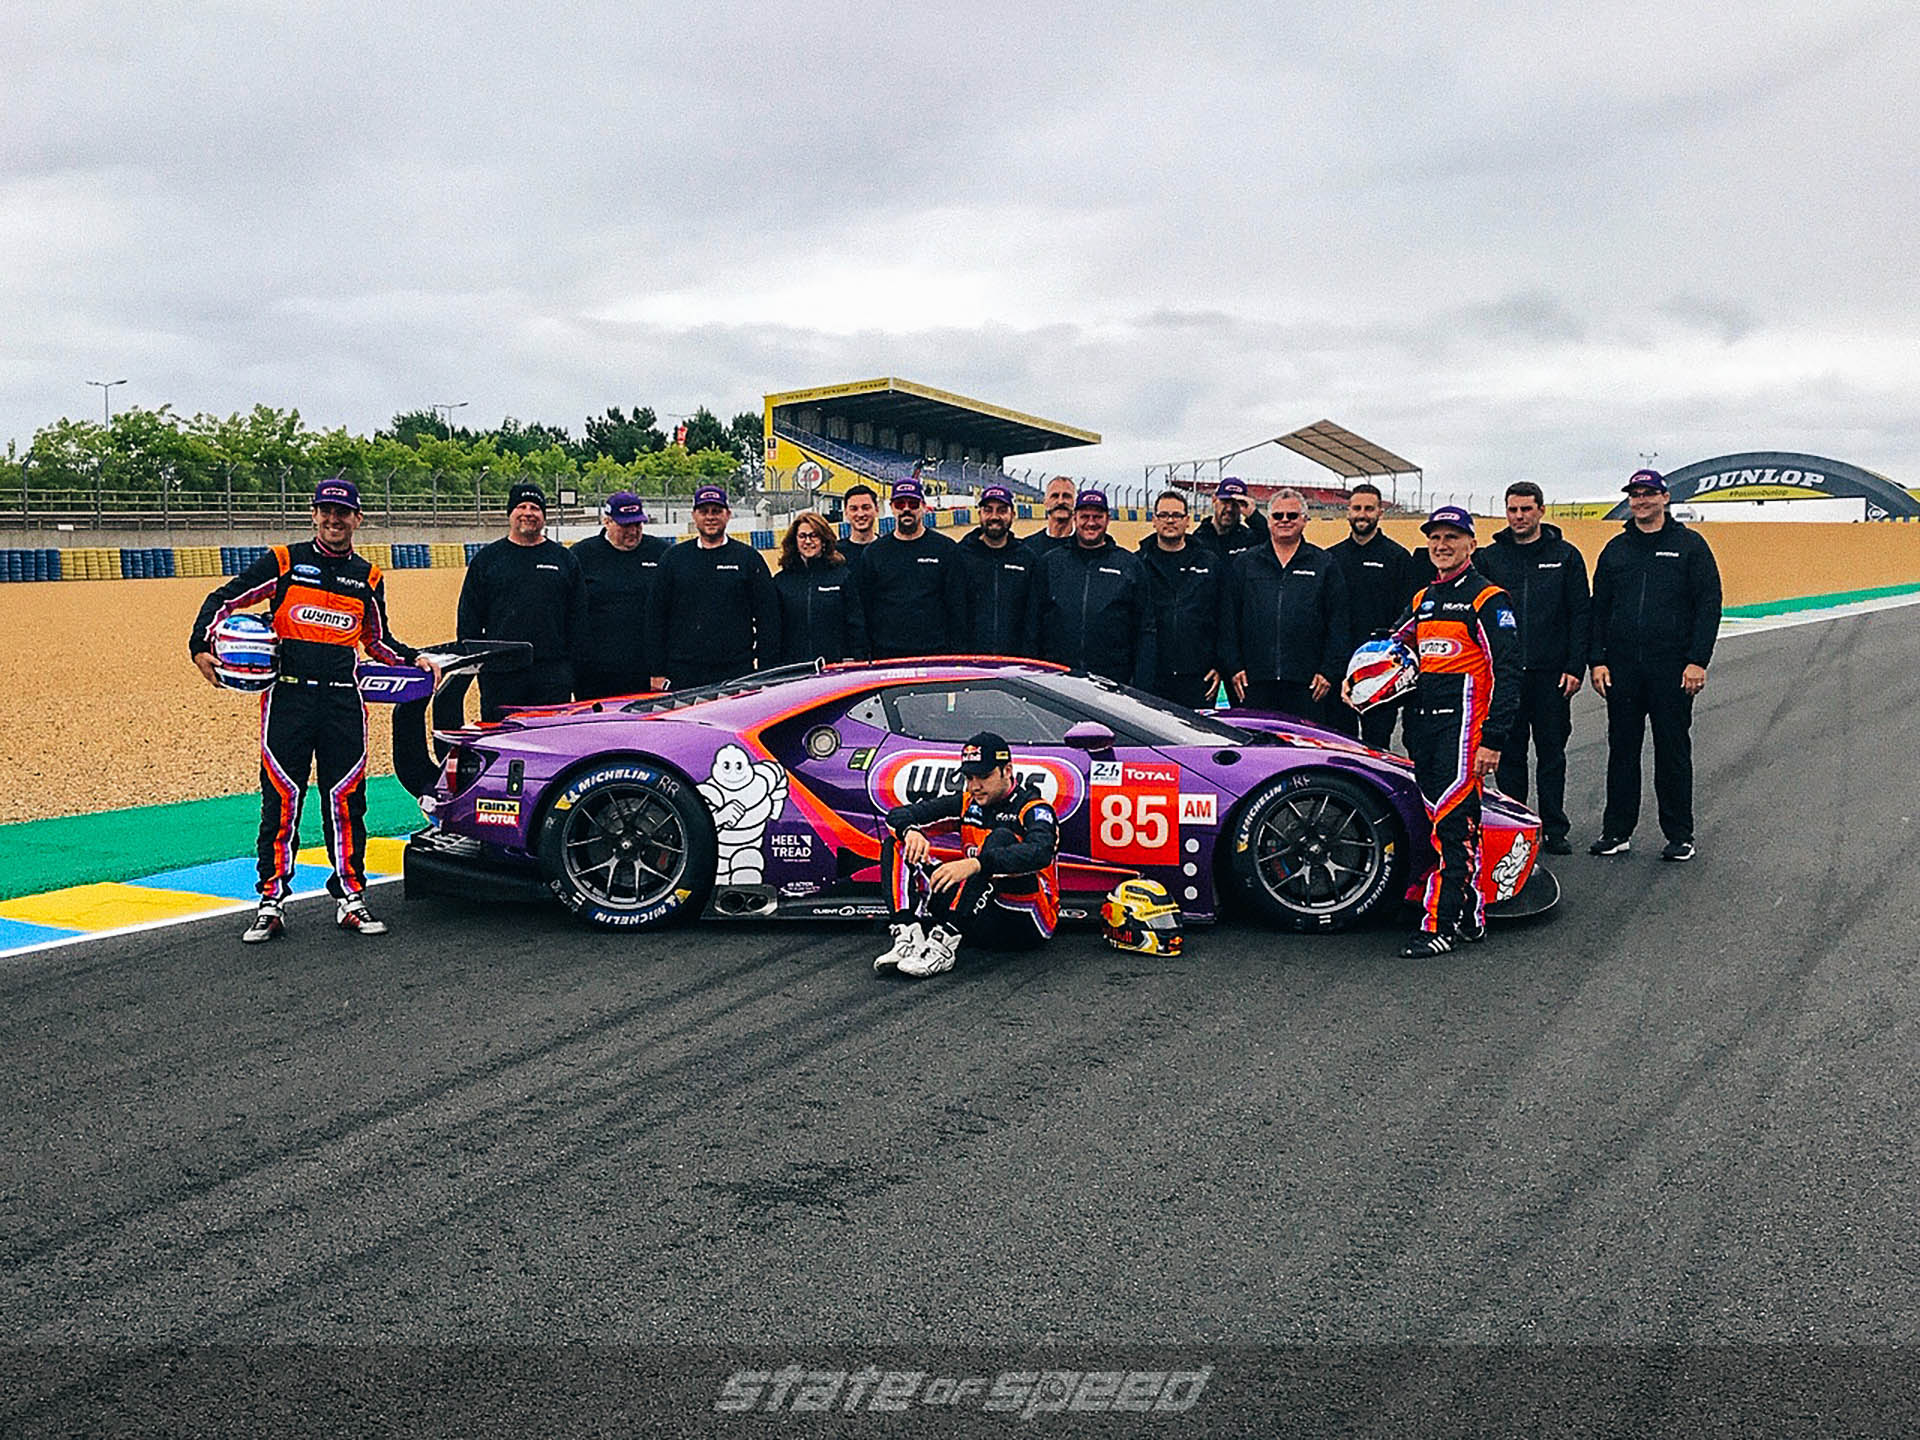 #85 Ford Racing Win at Le Mans